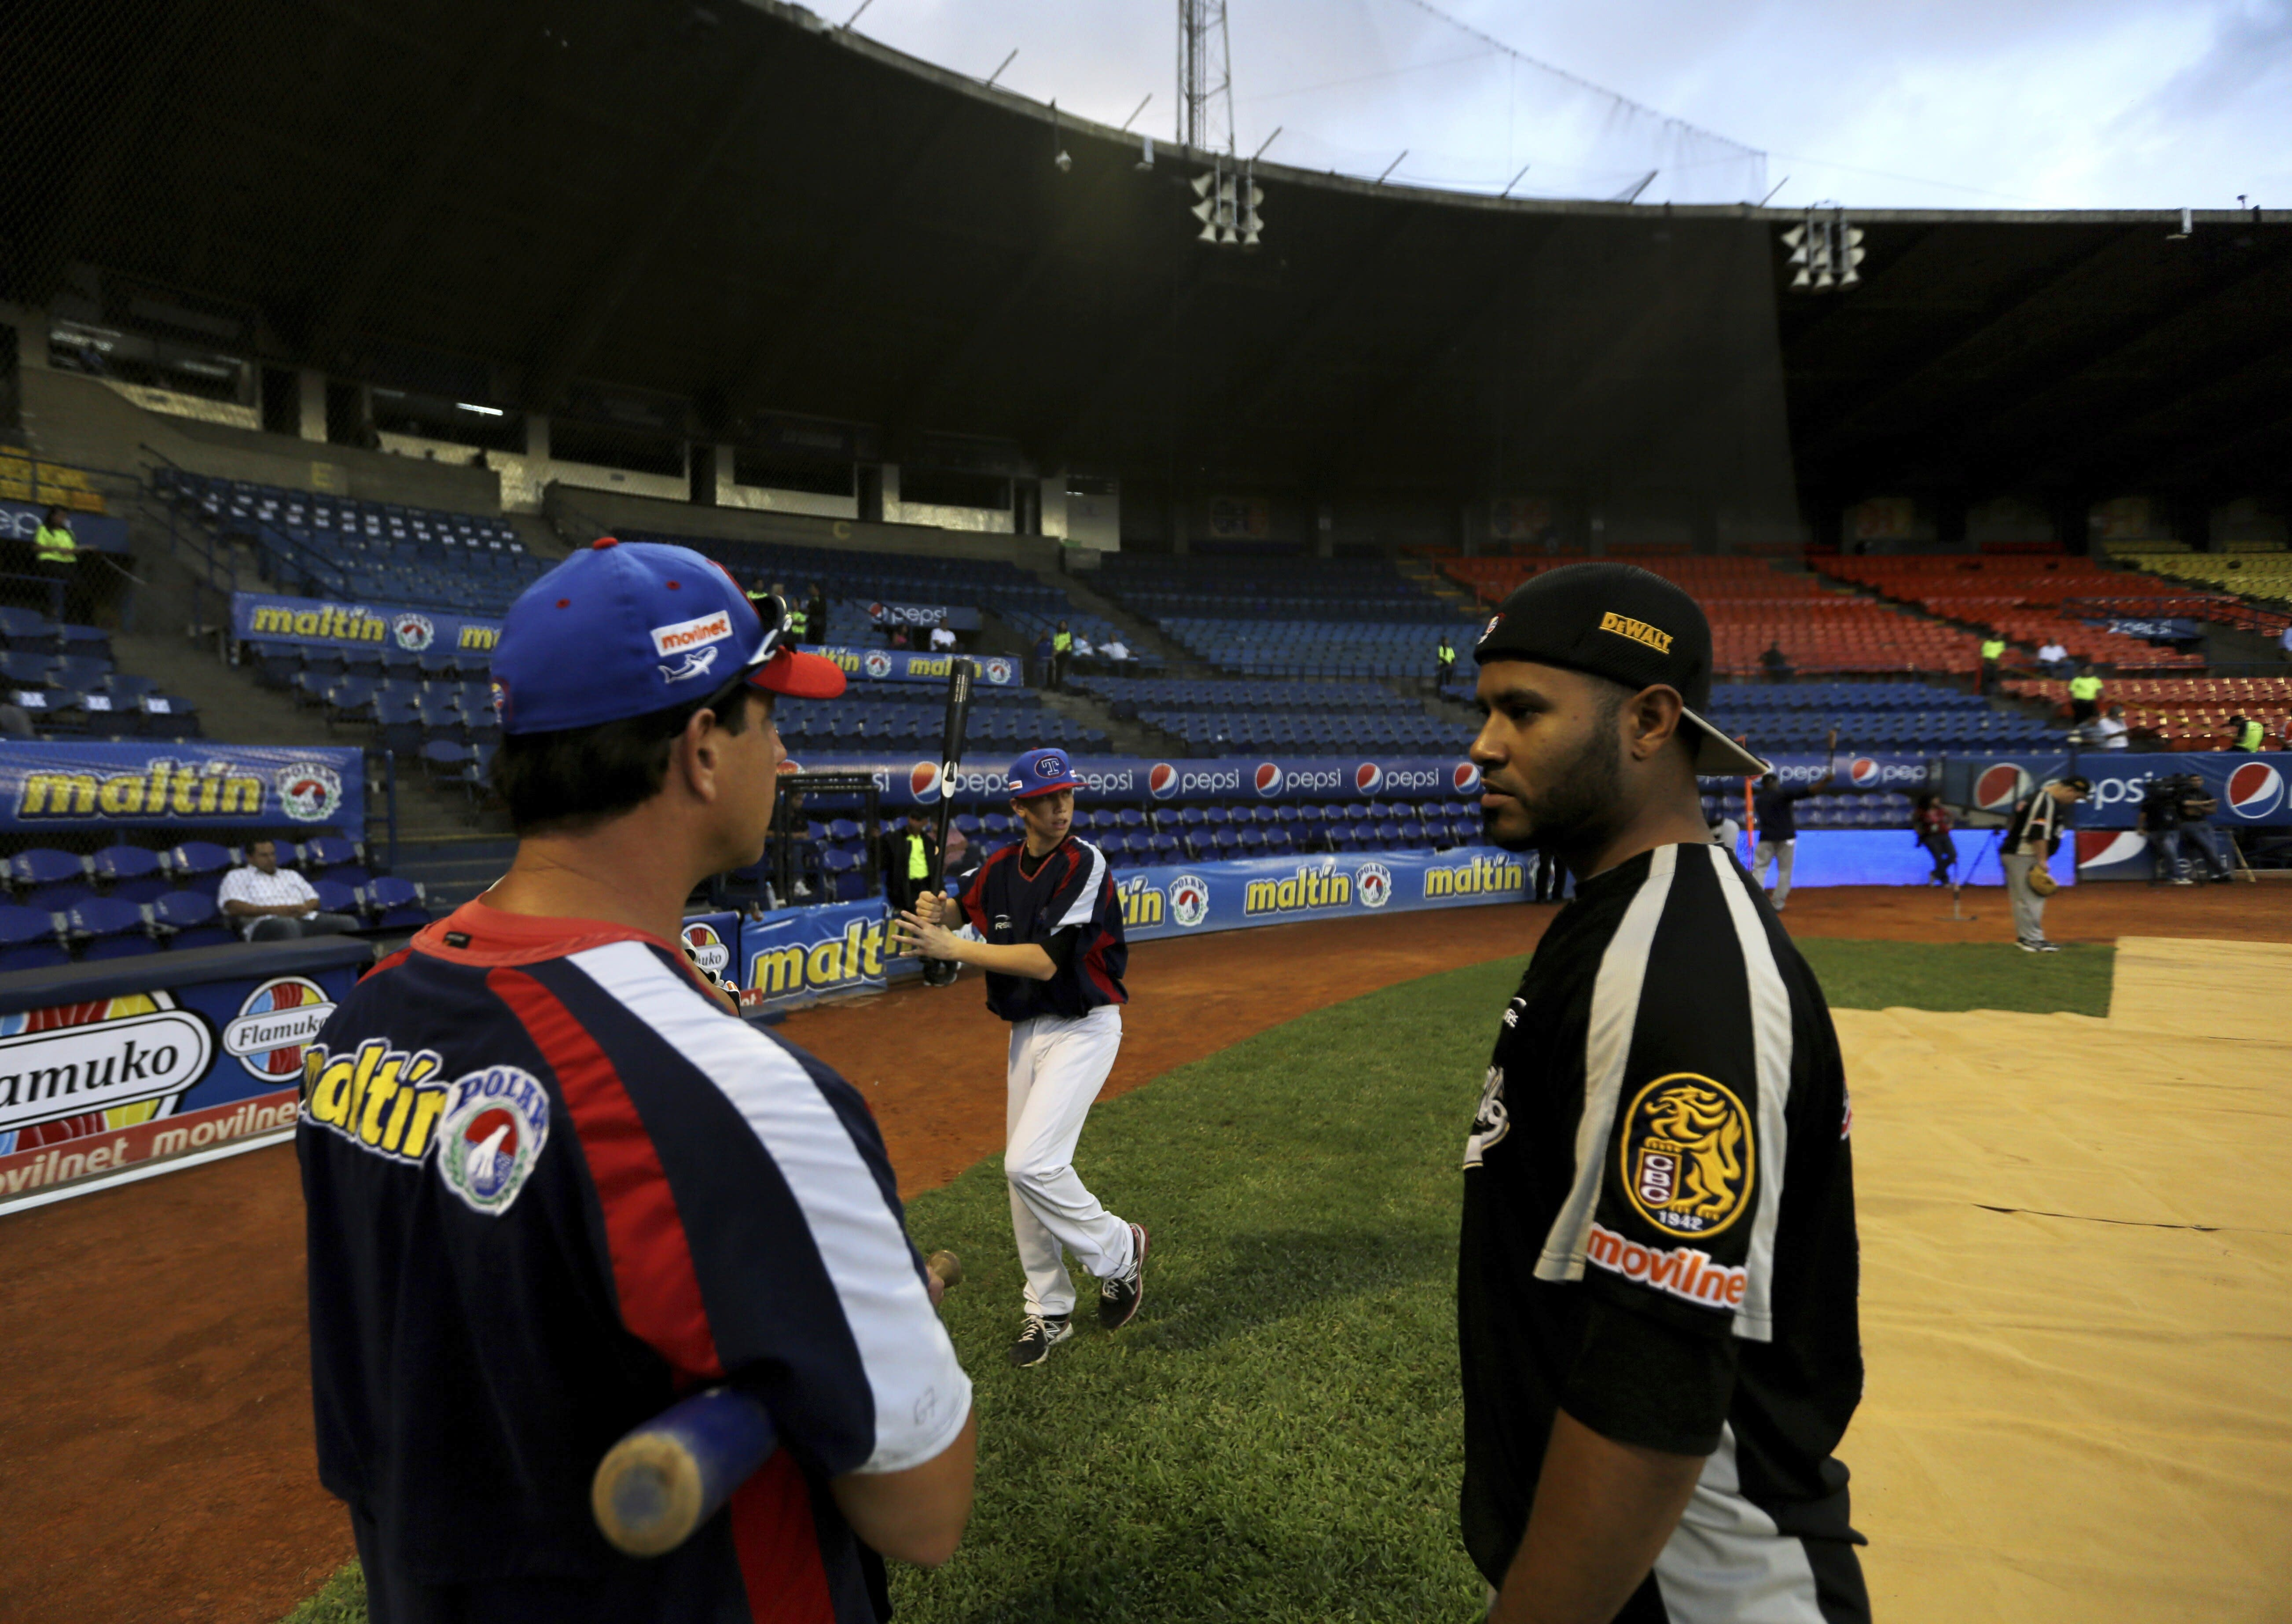 FILE - In this Nov. 27, 2013, photo, Anthony DeFrancesco, center, son of Tiburones head coach Tony DeFrancesco, left, practices his baseball swing as his father speaks with a player prior to a baseball game against rival Leones, at Estadio Universitario in Caracas, Venezuela. Major League Baseball is banning players from participating in the Venezuelan Winter League in one of the first public repercussions of new U.S. economic sanctions against the Venezuelan government. MLB said Thursday, Aug. 22, 2019, it is in contact with the U.S. government to determine how to proceed under the new sanctions against President Nicols Maduro's administration and at least temporarily suspending involvement in the league. (AP Photo/Fernando Llano, File)